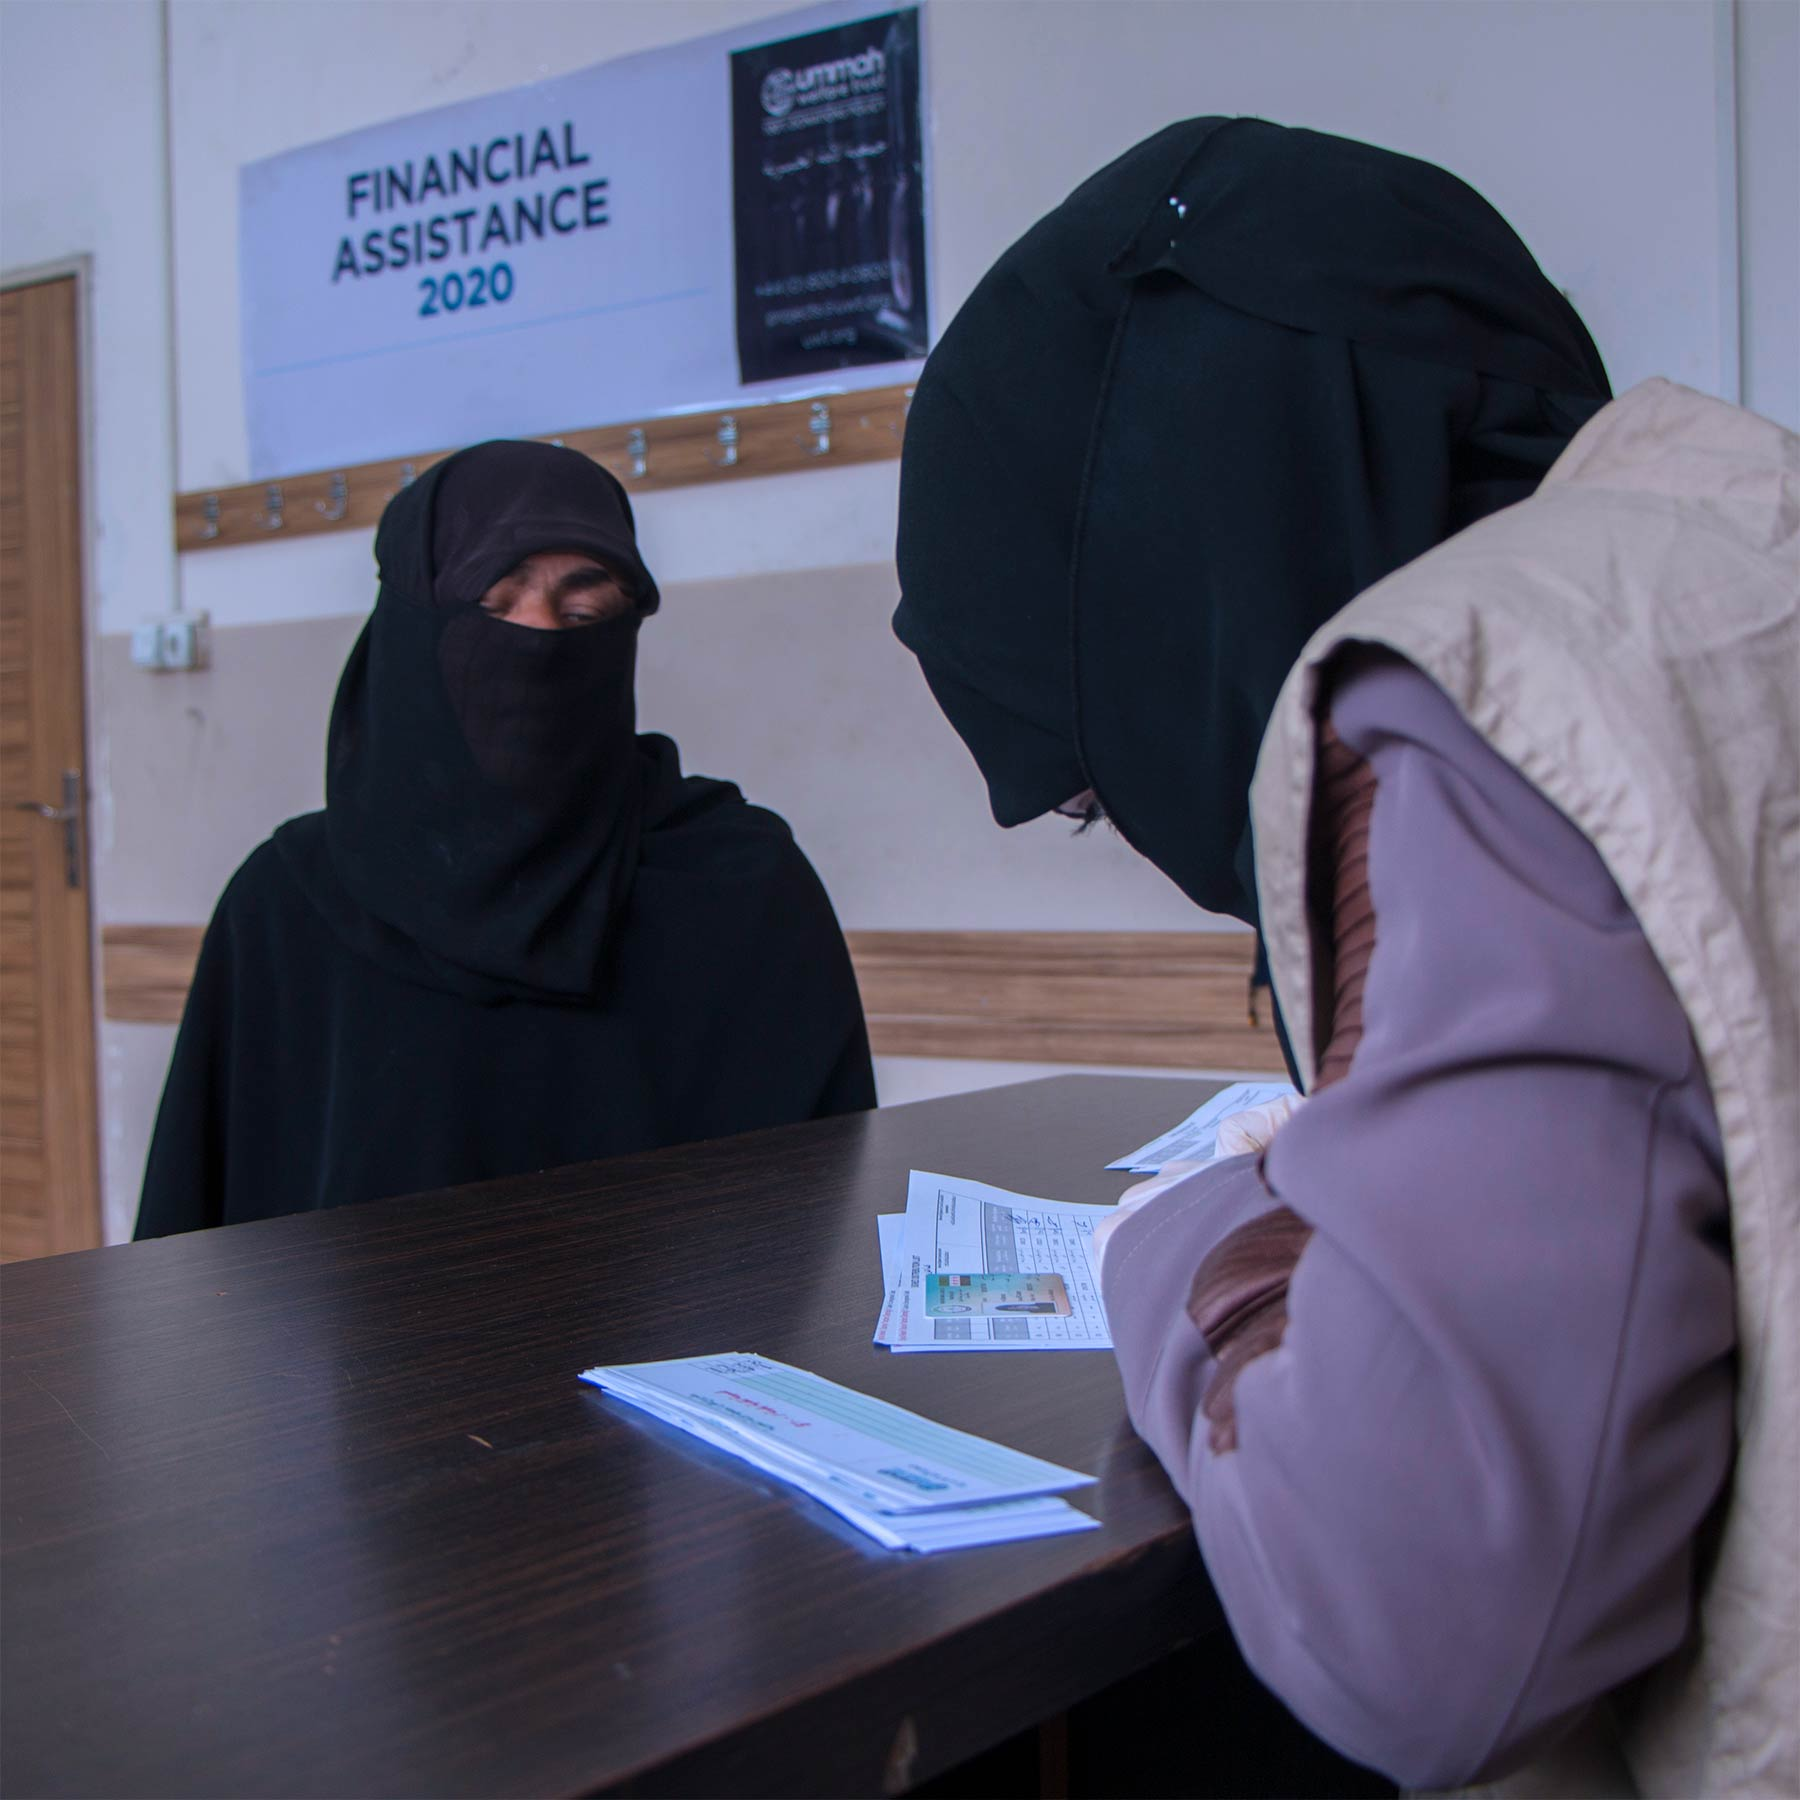 Financial Assistance in the Ummah